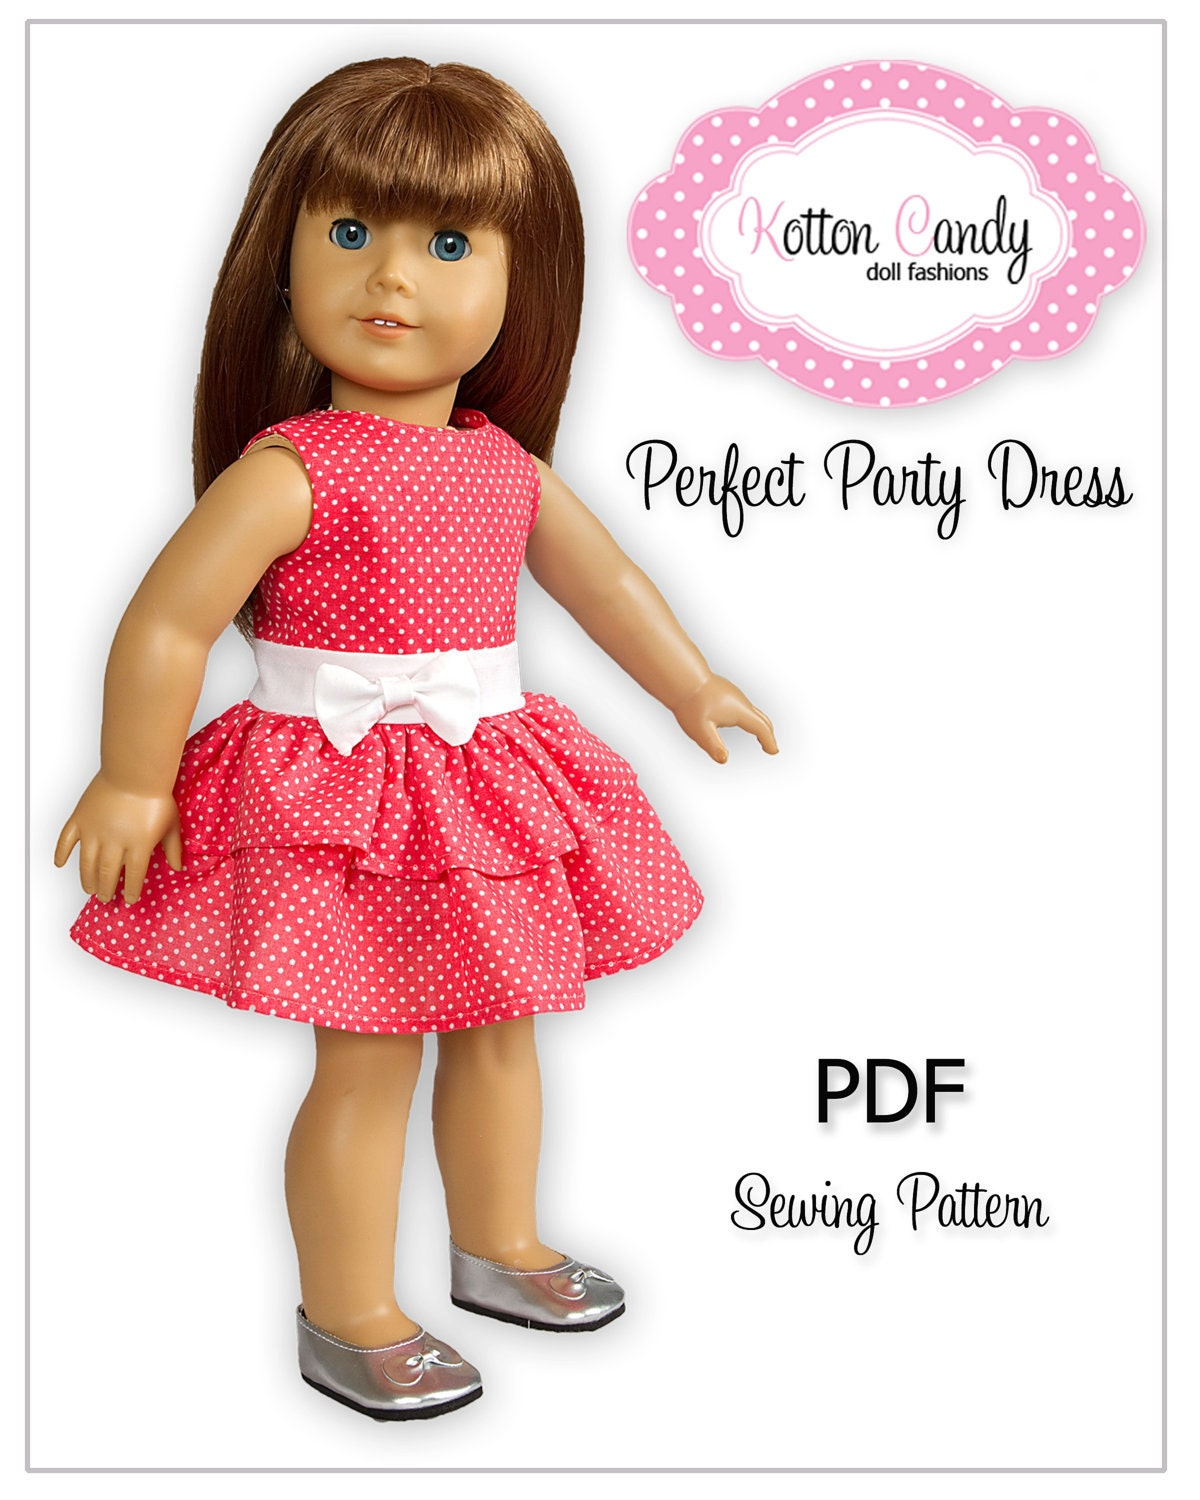 pdf sewing pattern for 18 american girl by kottoncandypatterns